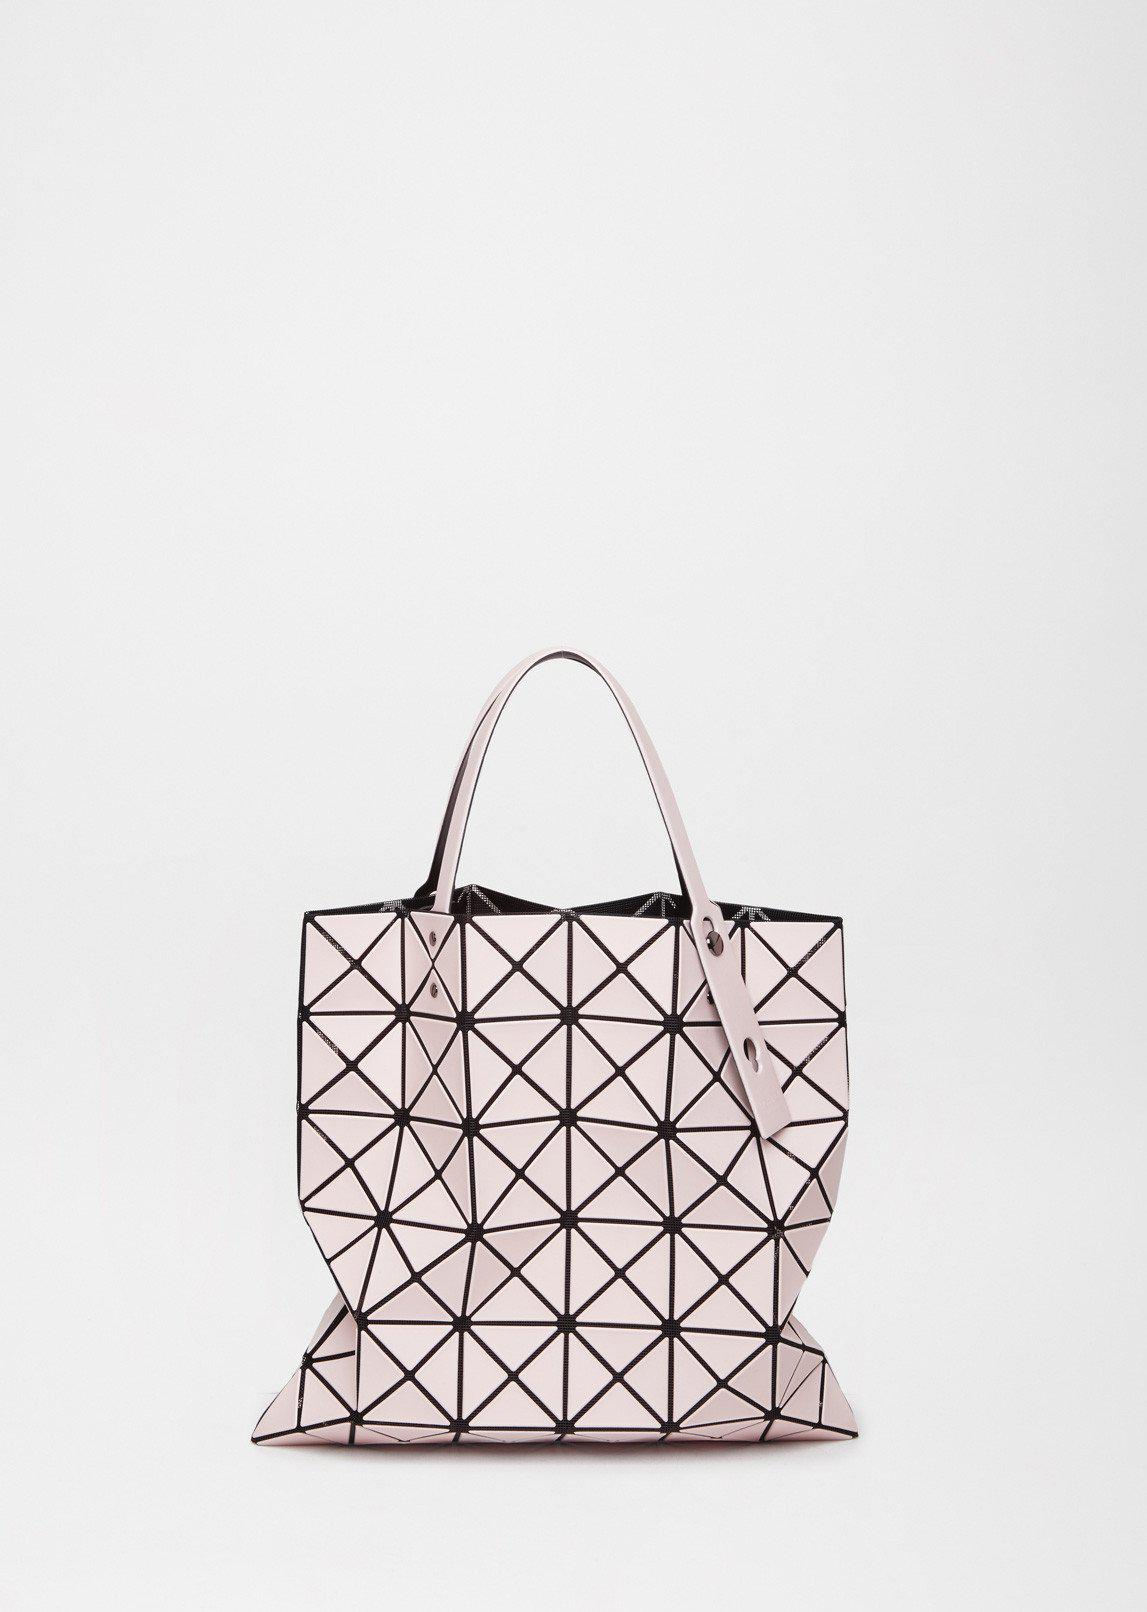 b7d03317c02 Womens Gray Lucent Tote Bag  best authentic a387f af8f5 Lyst - Bao Bao  Issey Miyake lucent Frost Bag in Pink ...